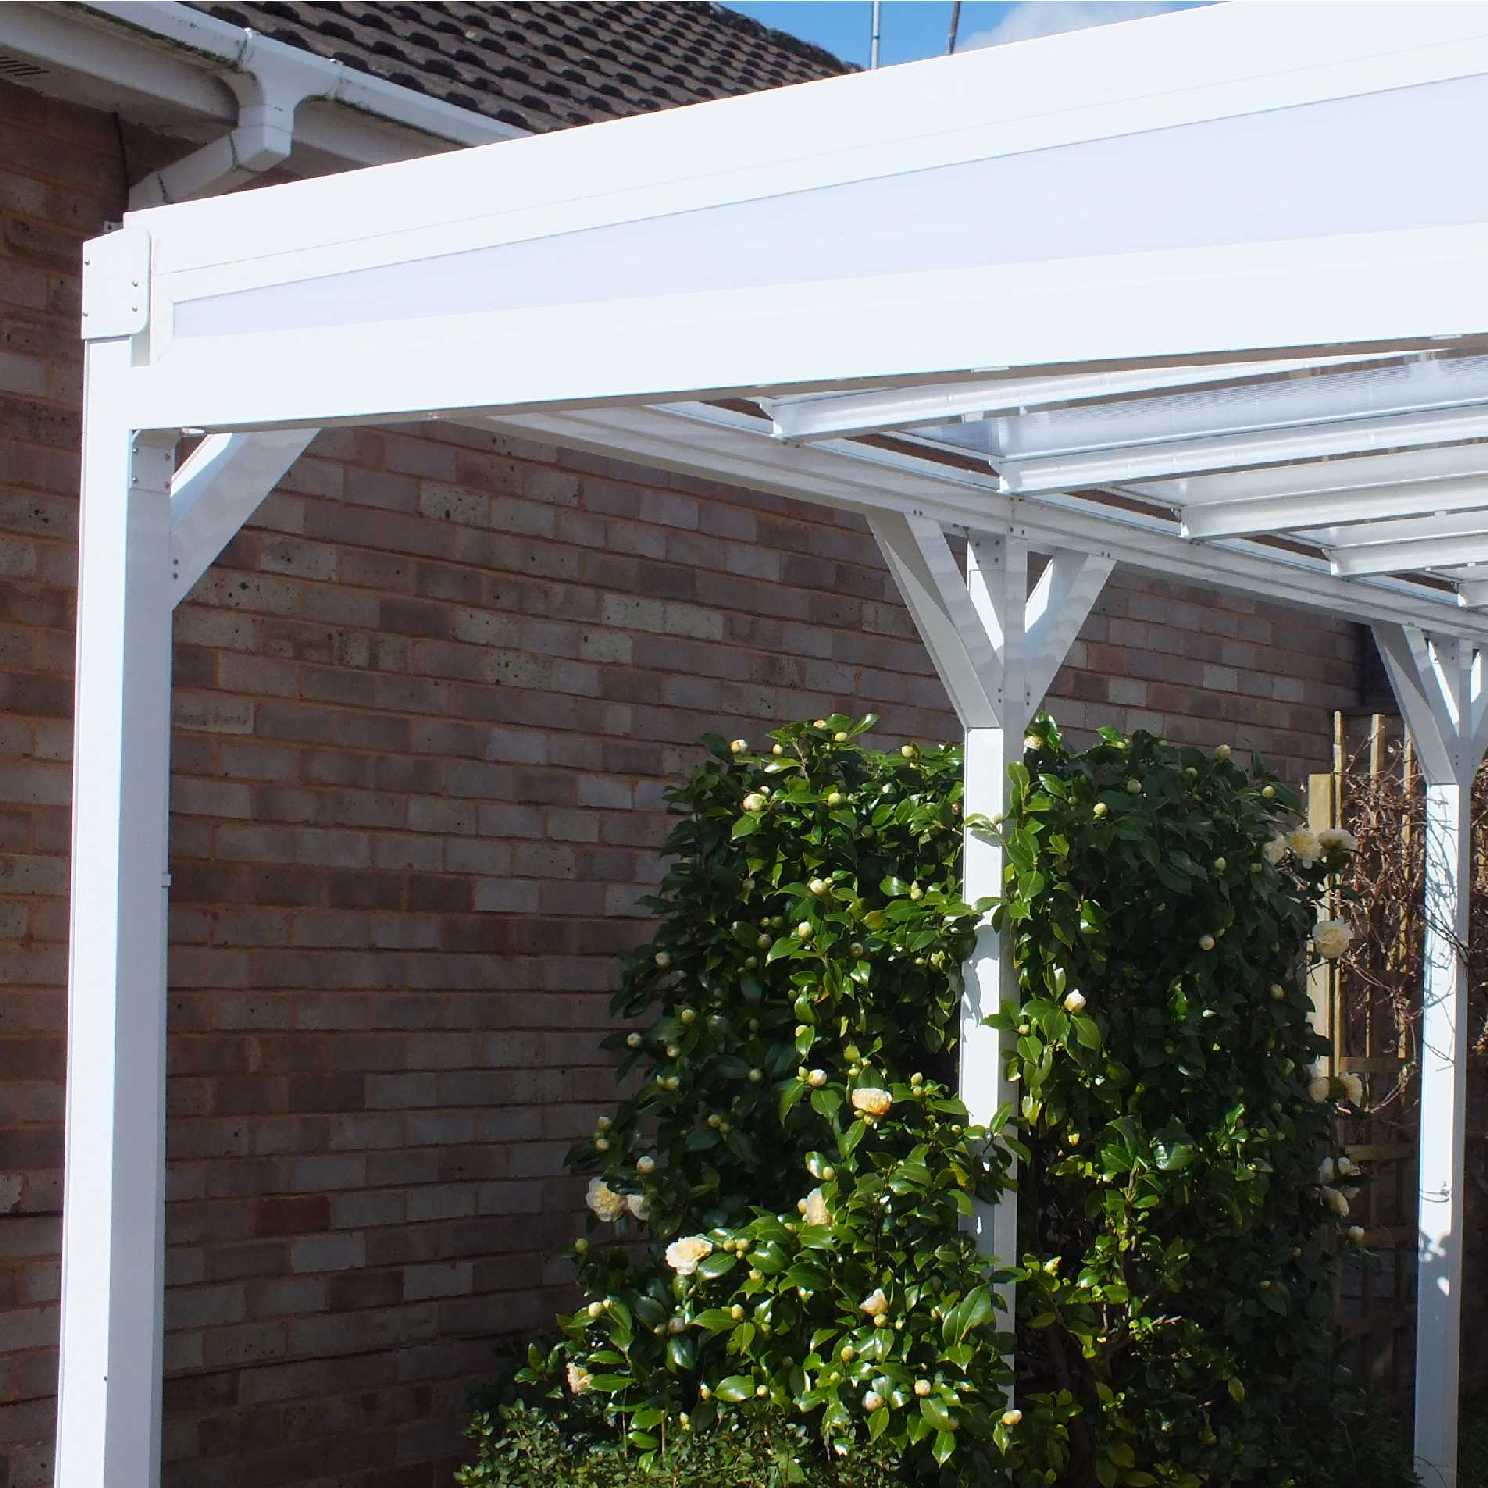 Omega Smart Lean-To Canopy with 16mm Polycarbonate Glazing - 4.2m (W) x 2.0m (P), (3) Supporting Posts from Omega Build